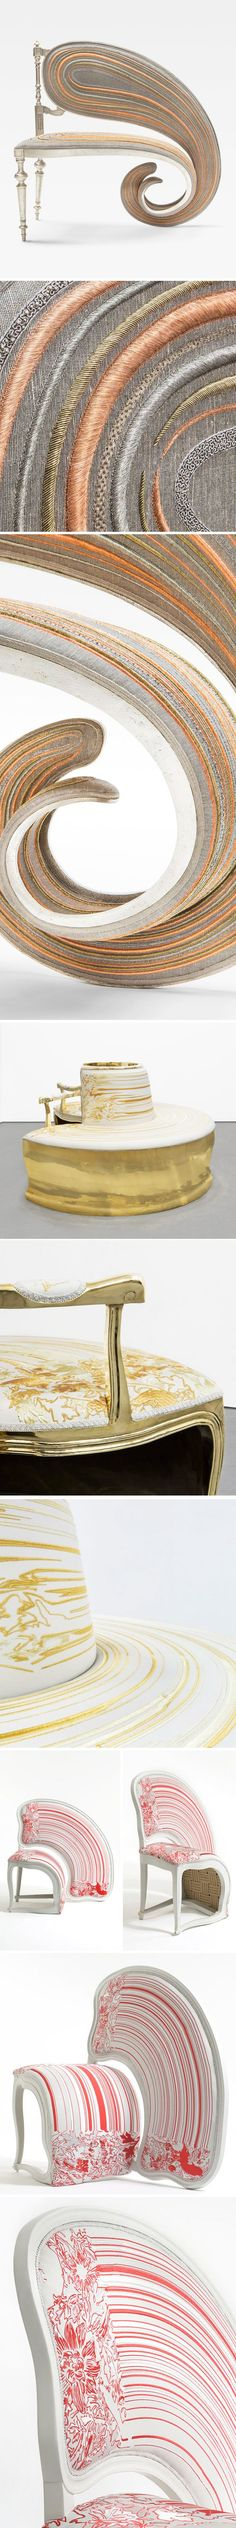 furniture/art by sebastian brajkovic